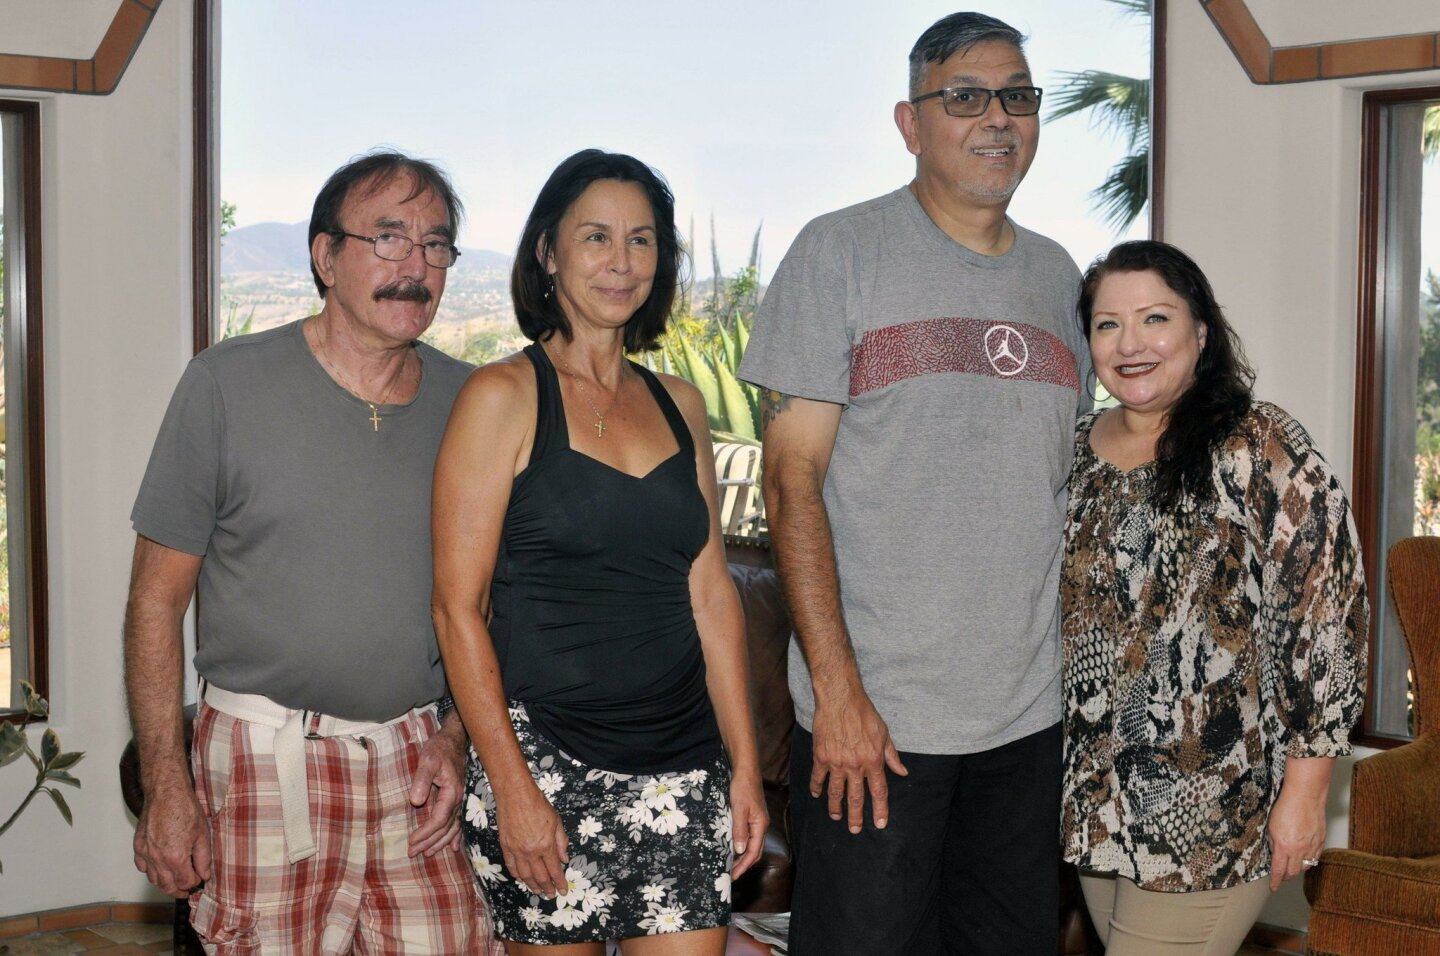 Hosts Val and Treasurer Sandy Popescu, Coastline Out2Reach Ministry founders Bobby and Alice Amaro